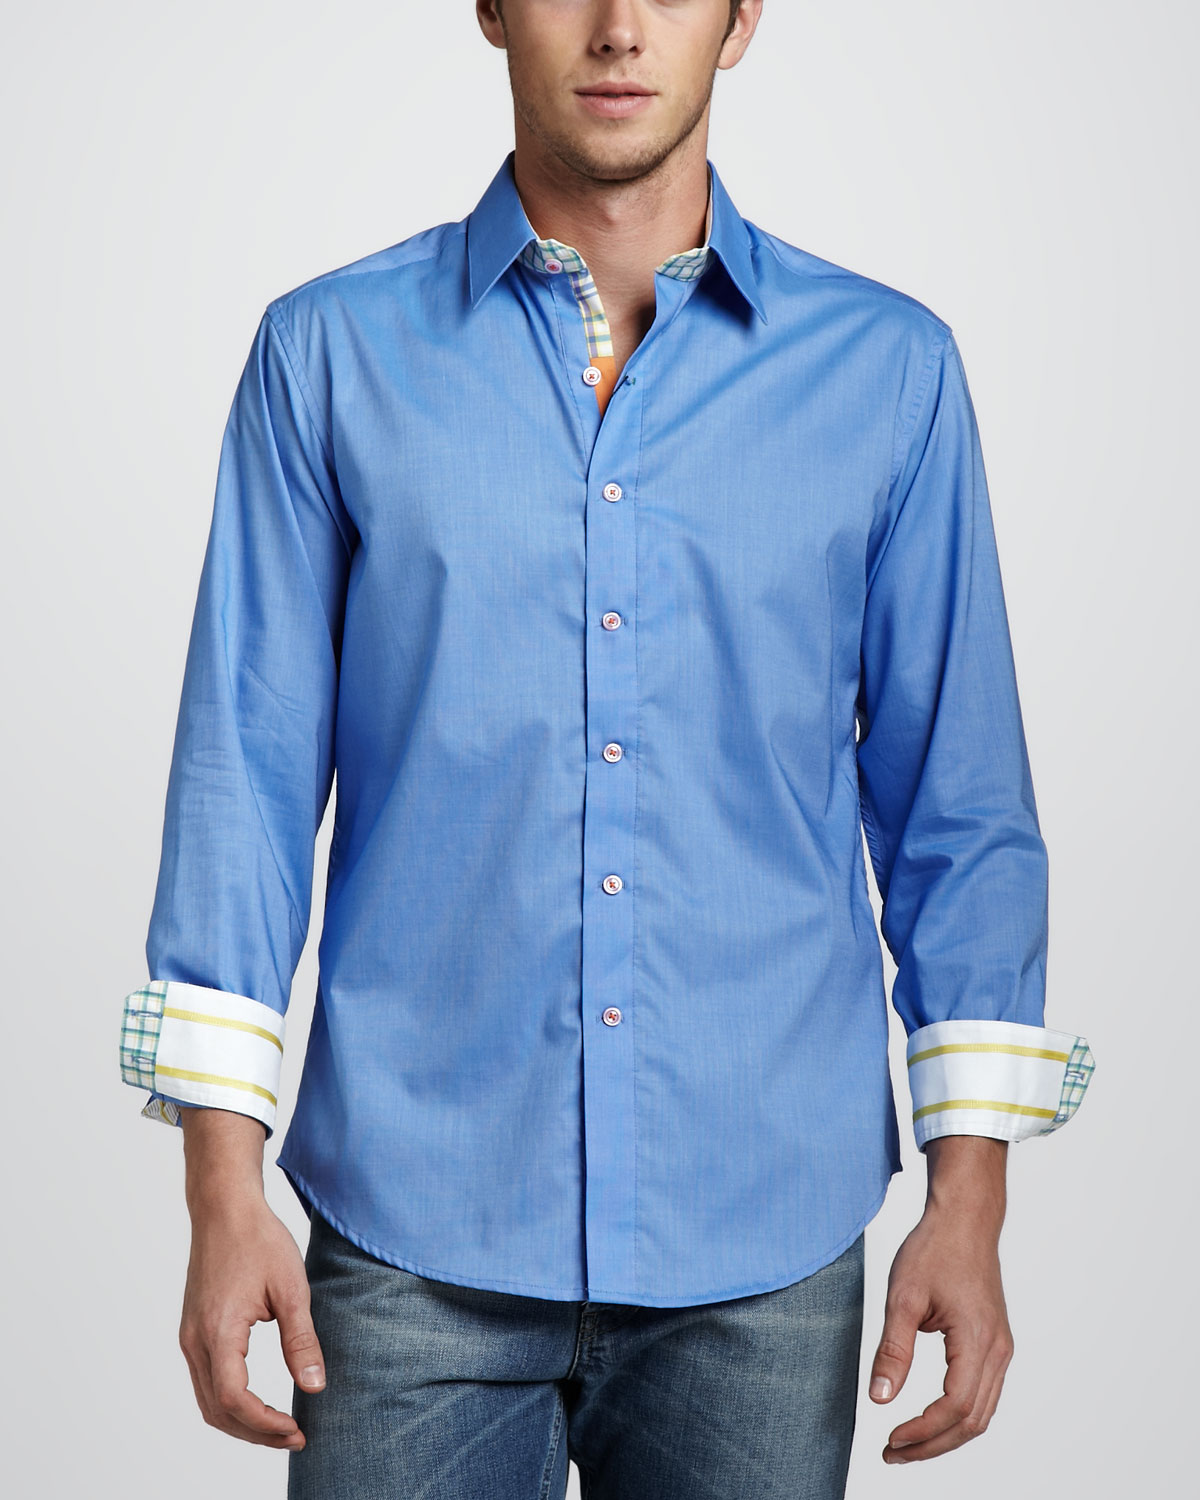 Lyst robert graham x collection bay shore sport shirt for Where are robert graham shirts made